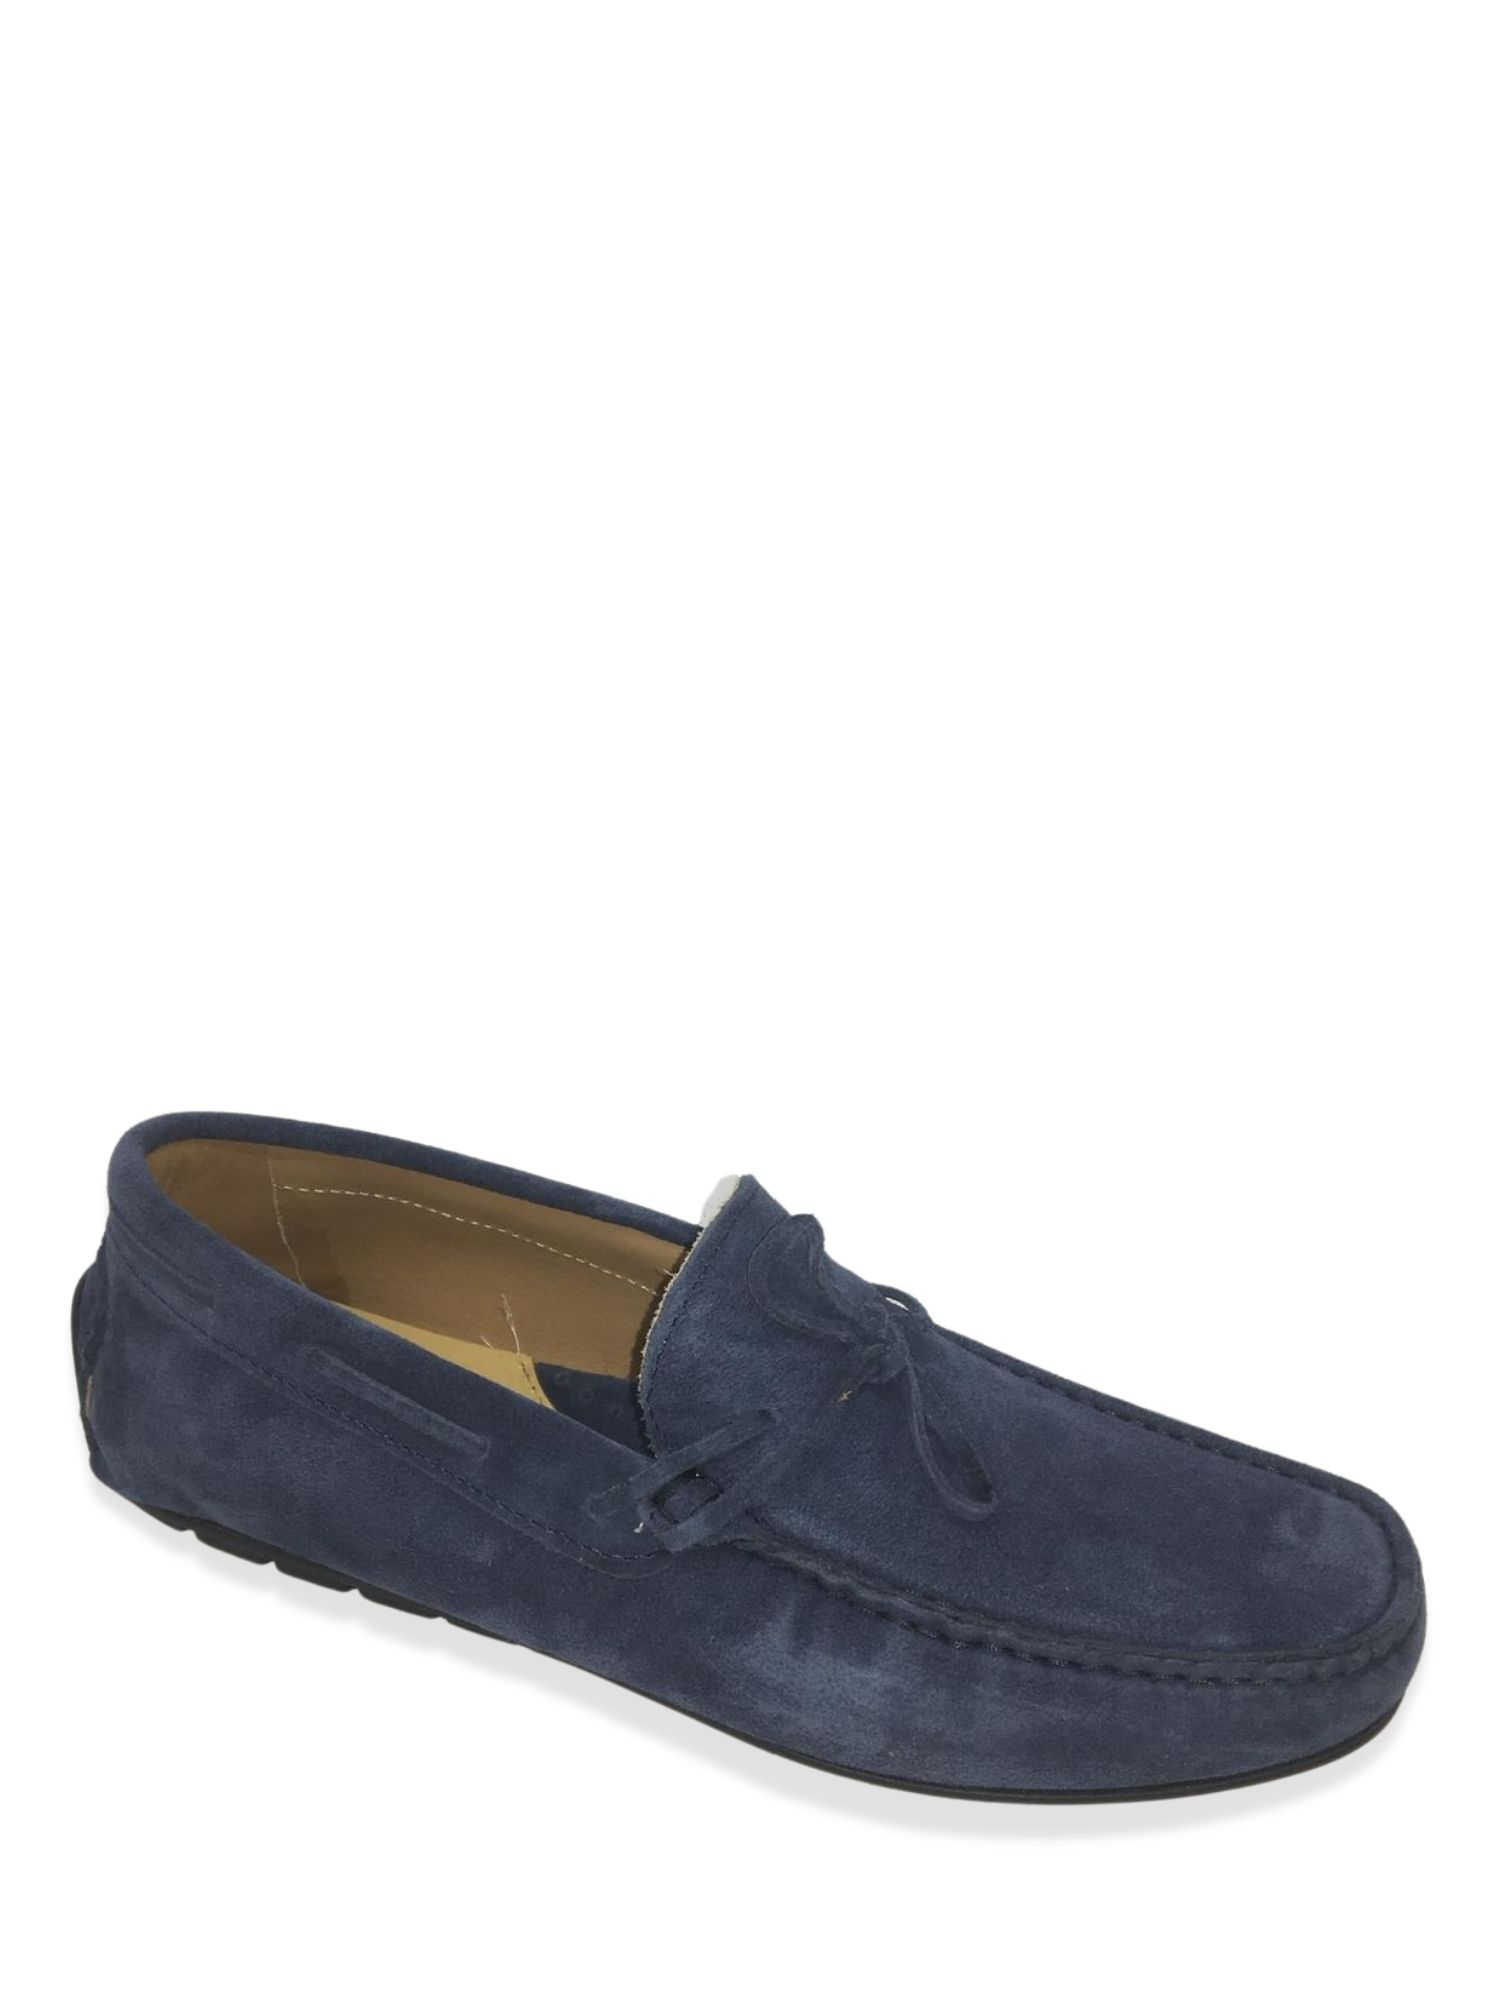 Calzature Uomo Made in Italy Car 2 Jeans